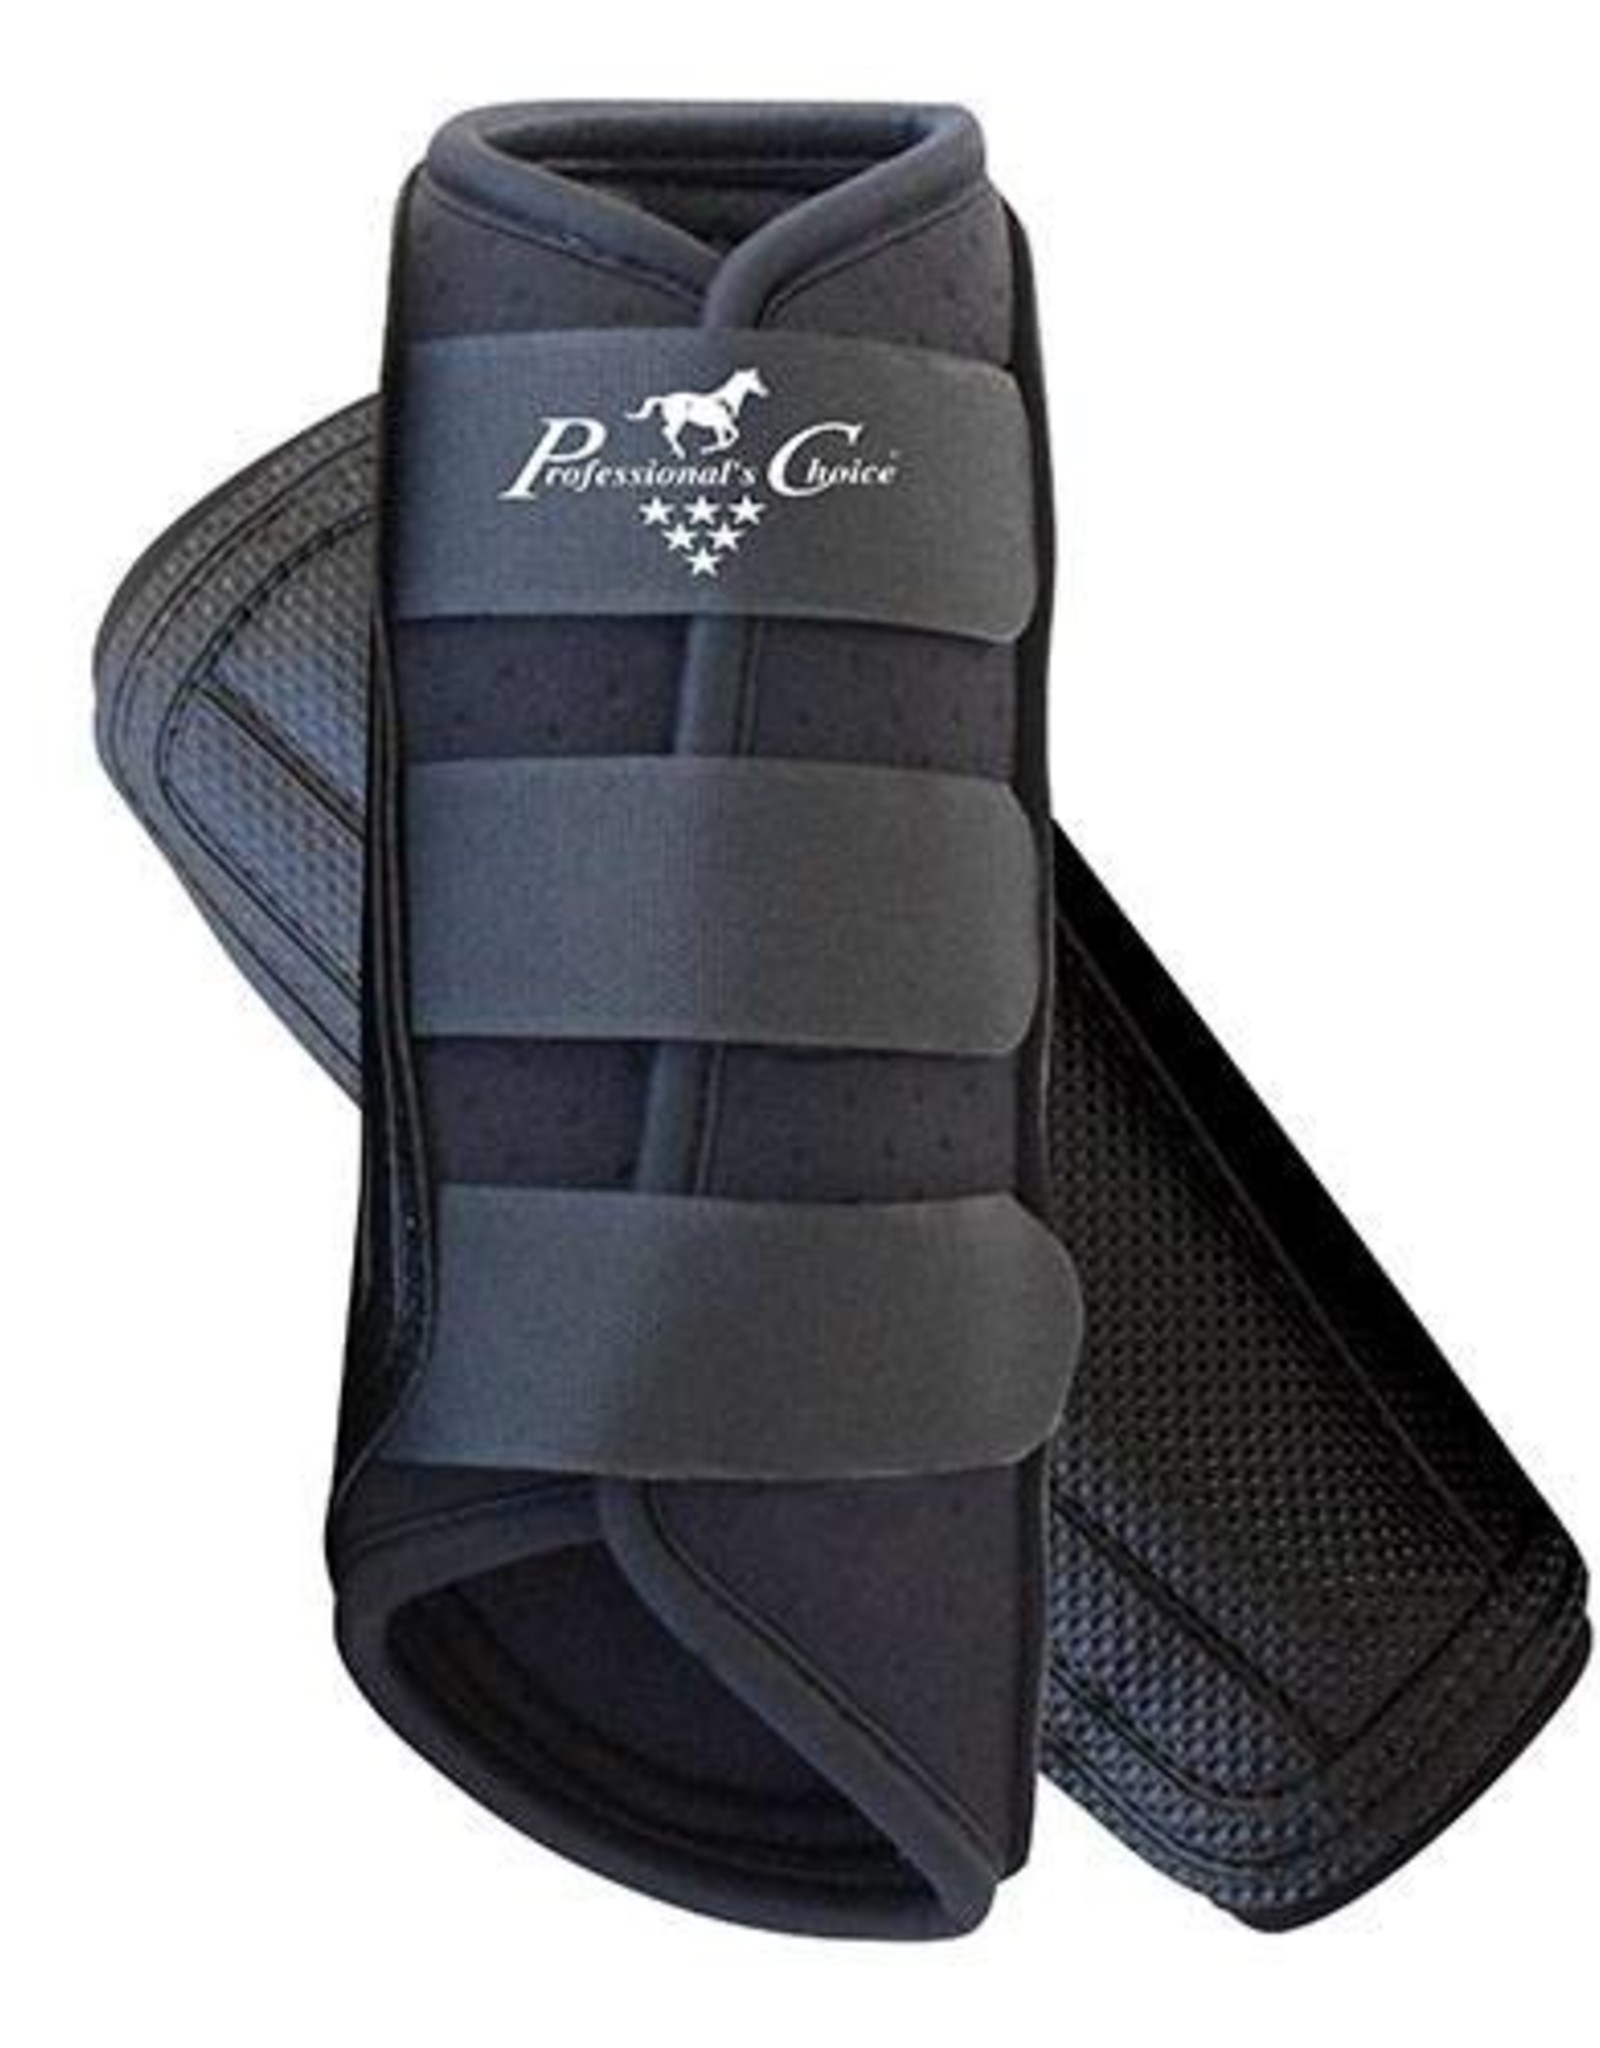 PROFESSIONAL'S CHOICE VENTECH ALL-PURPOSE BOOTS